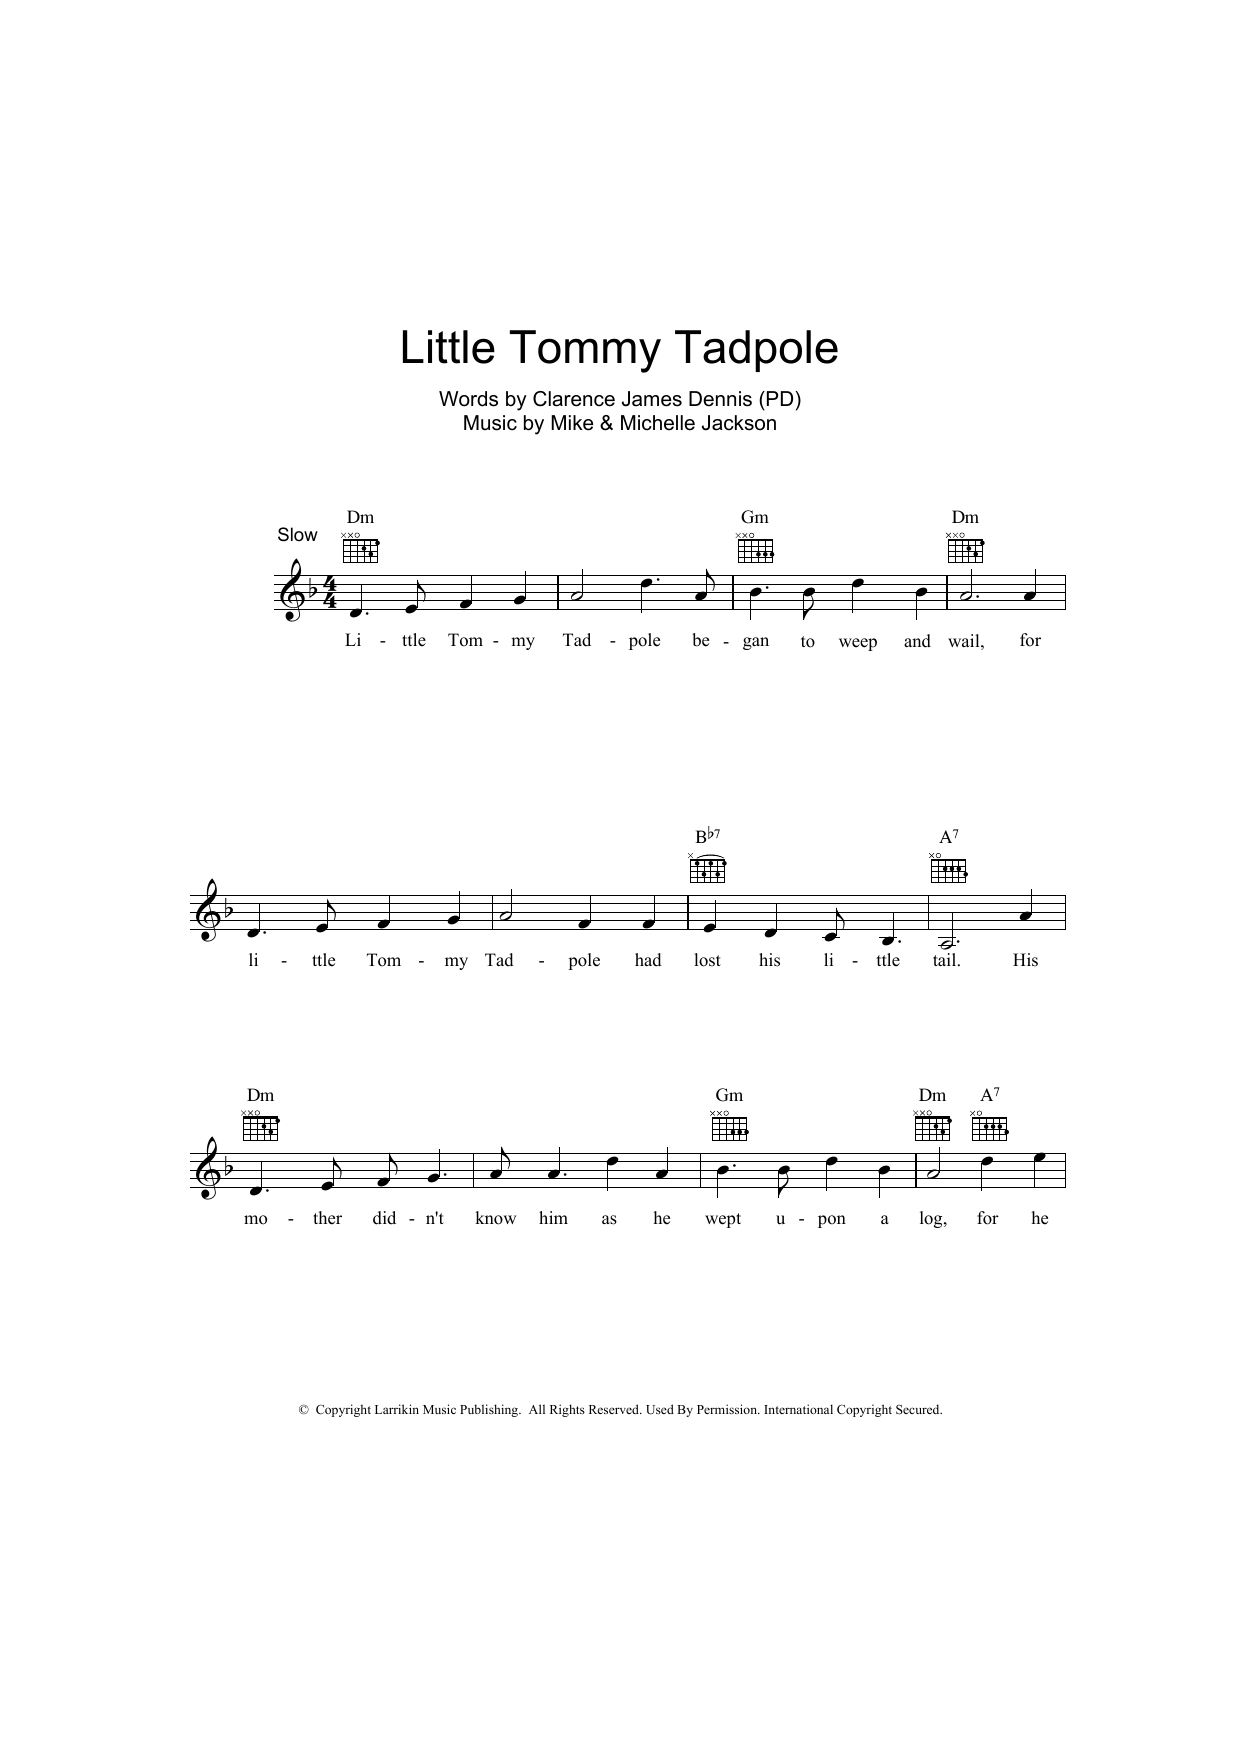 Little Tommy Tadpole Sheet Music Clarence James Dennis Melody